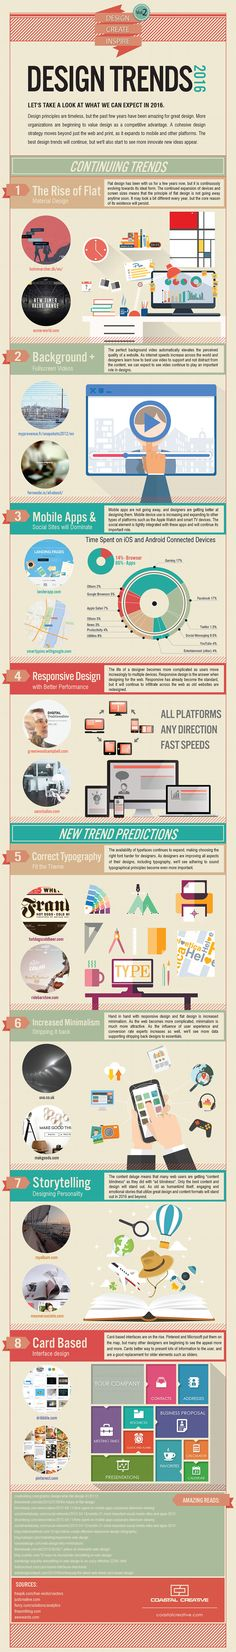 Design Trends to Look Out For This Year [Infographic], via @HubSpot